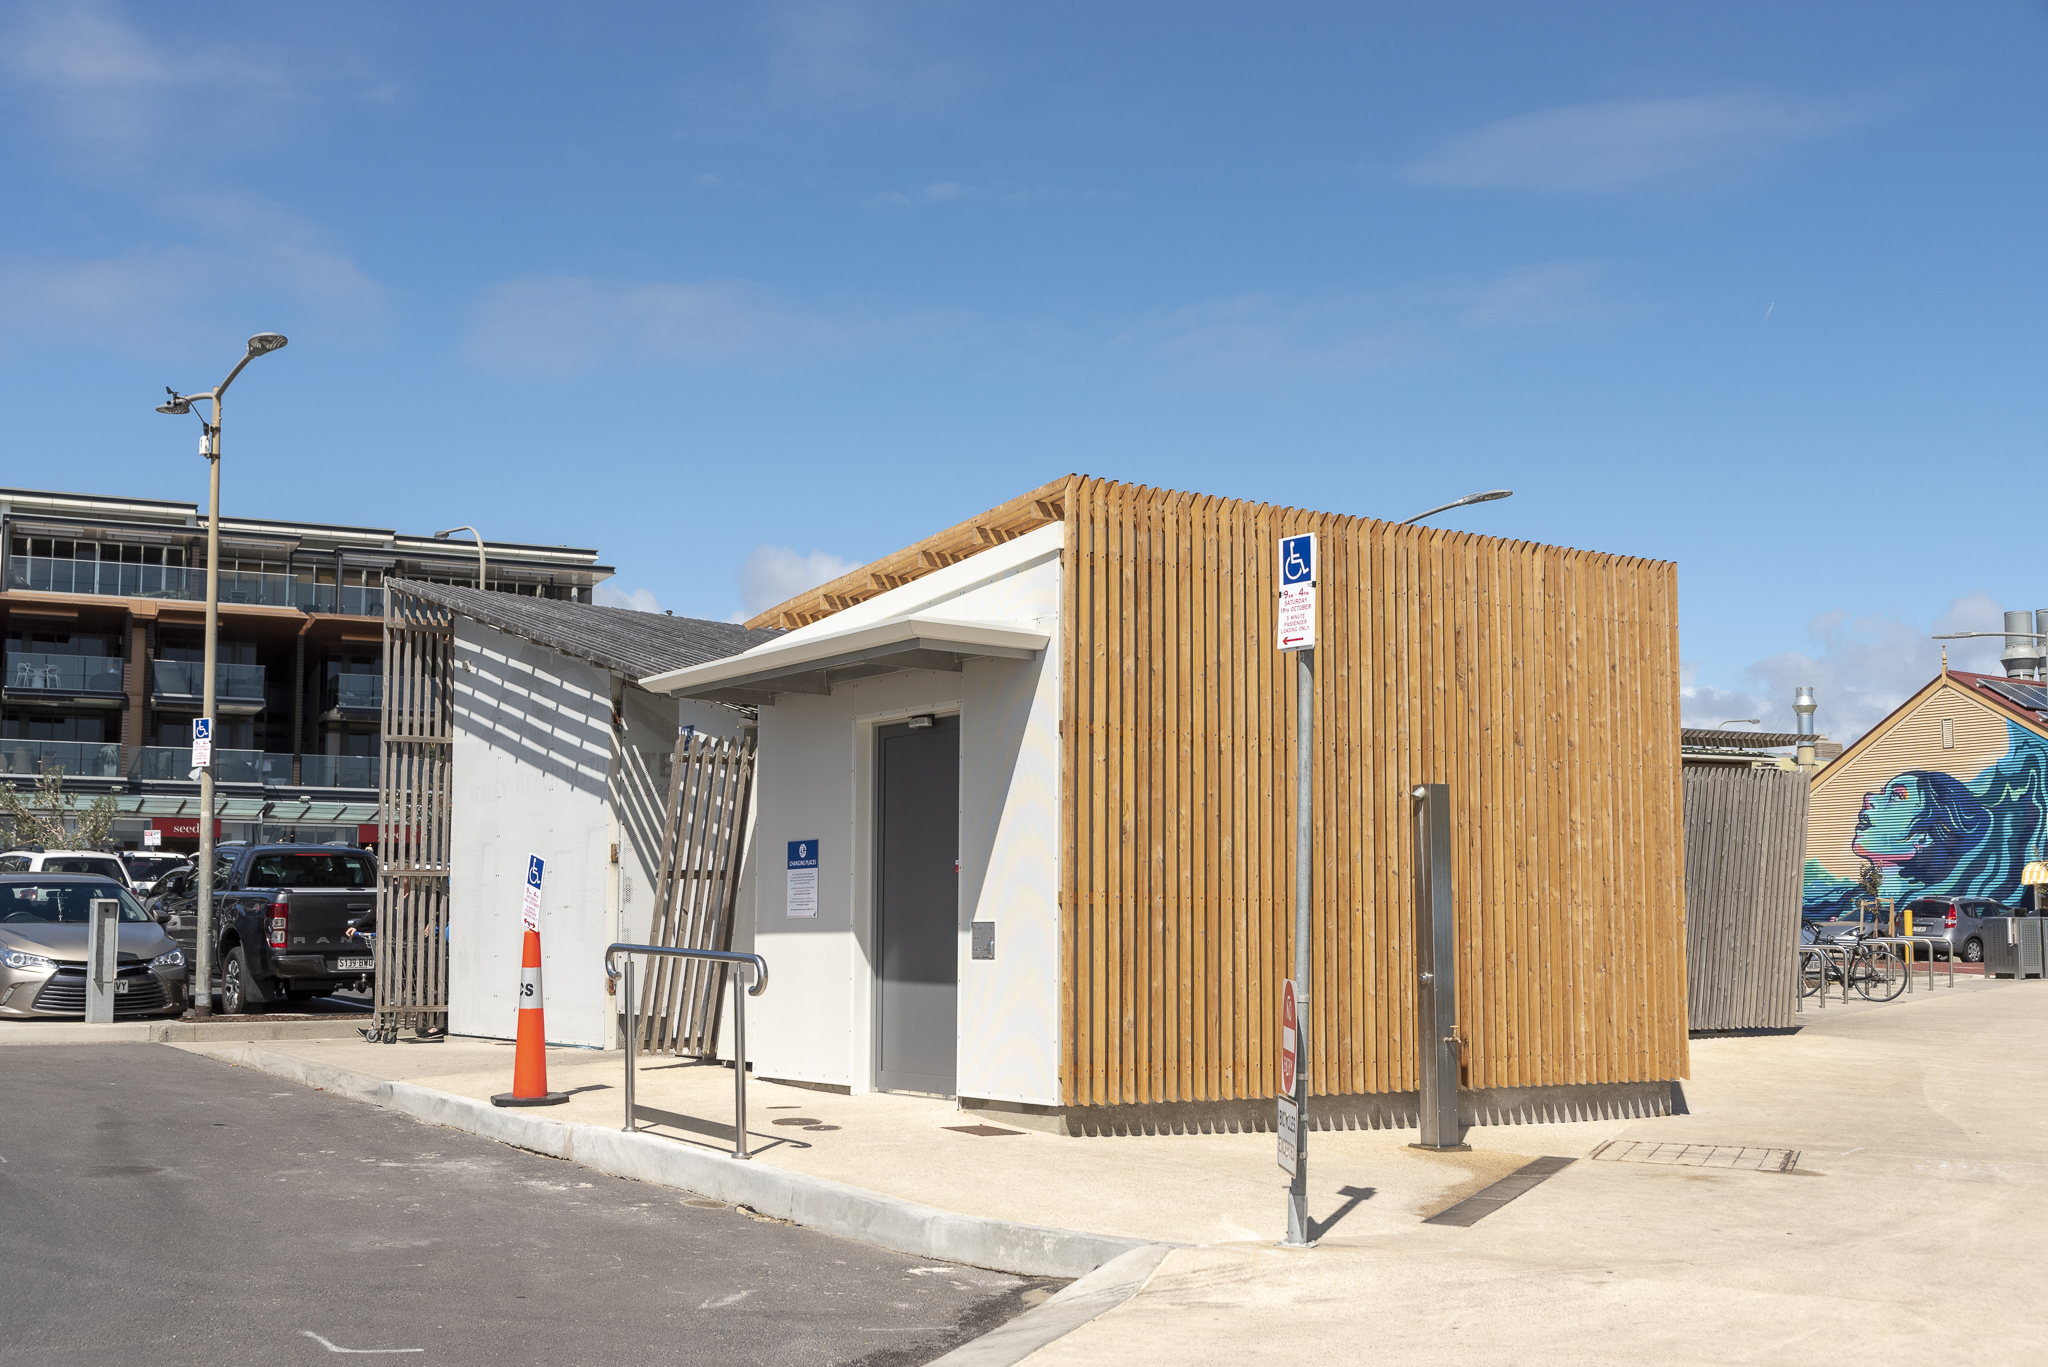 View of outside of Henley Beach Changing Place